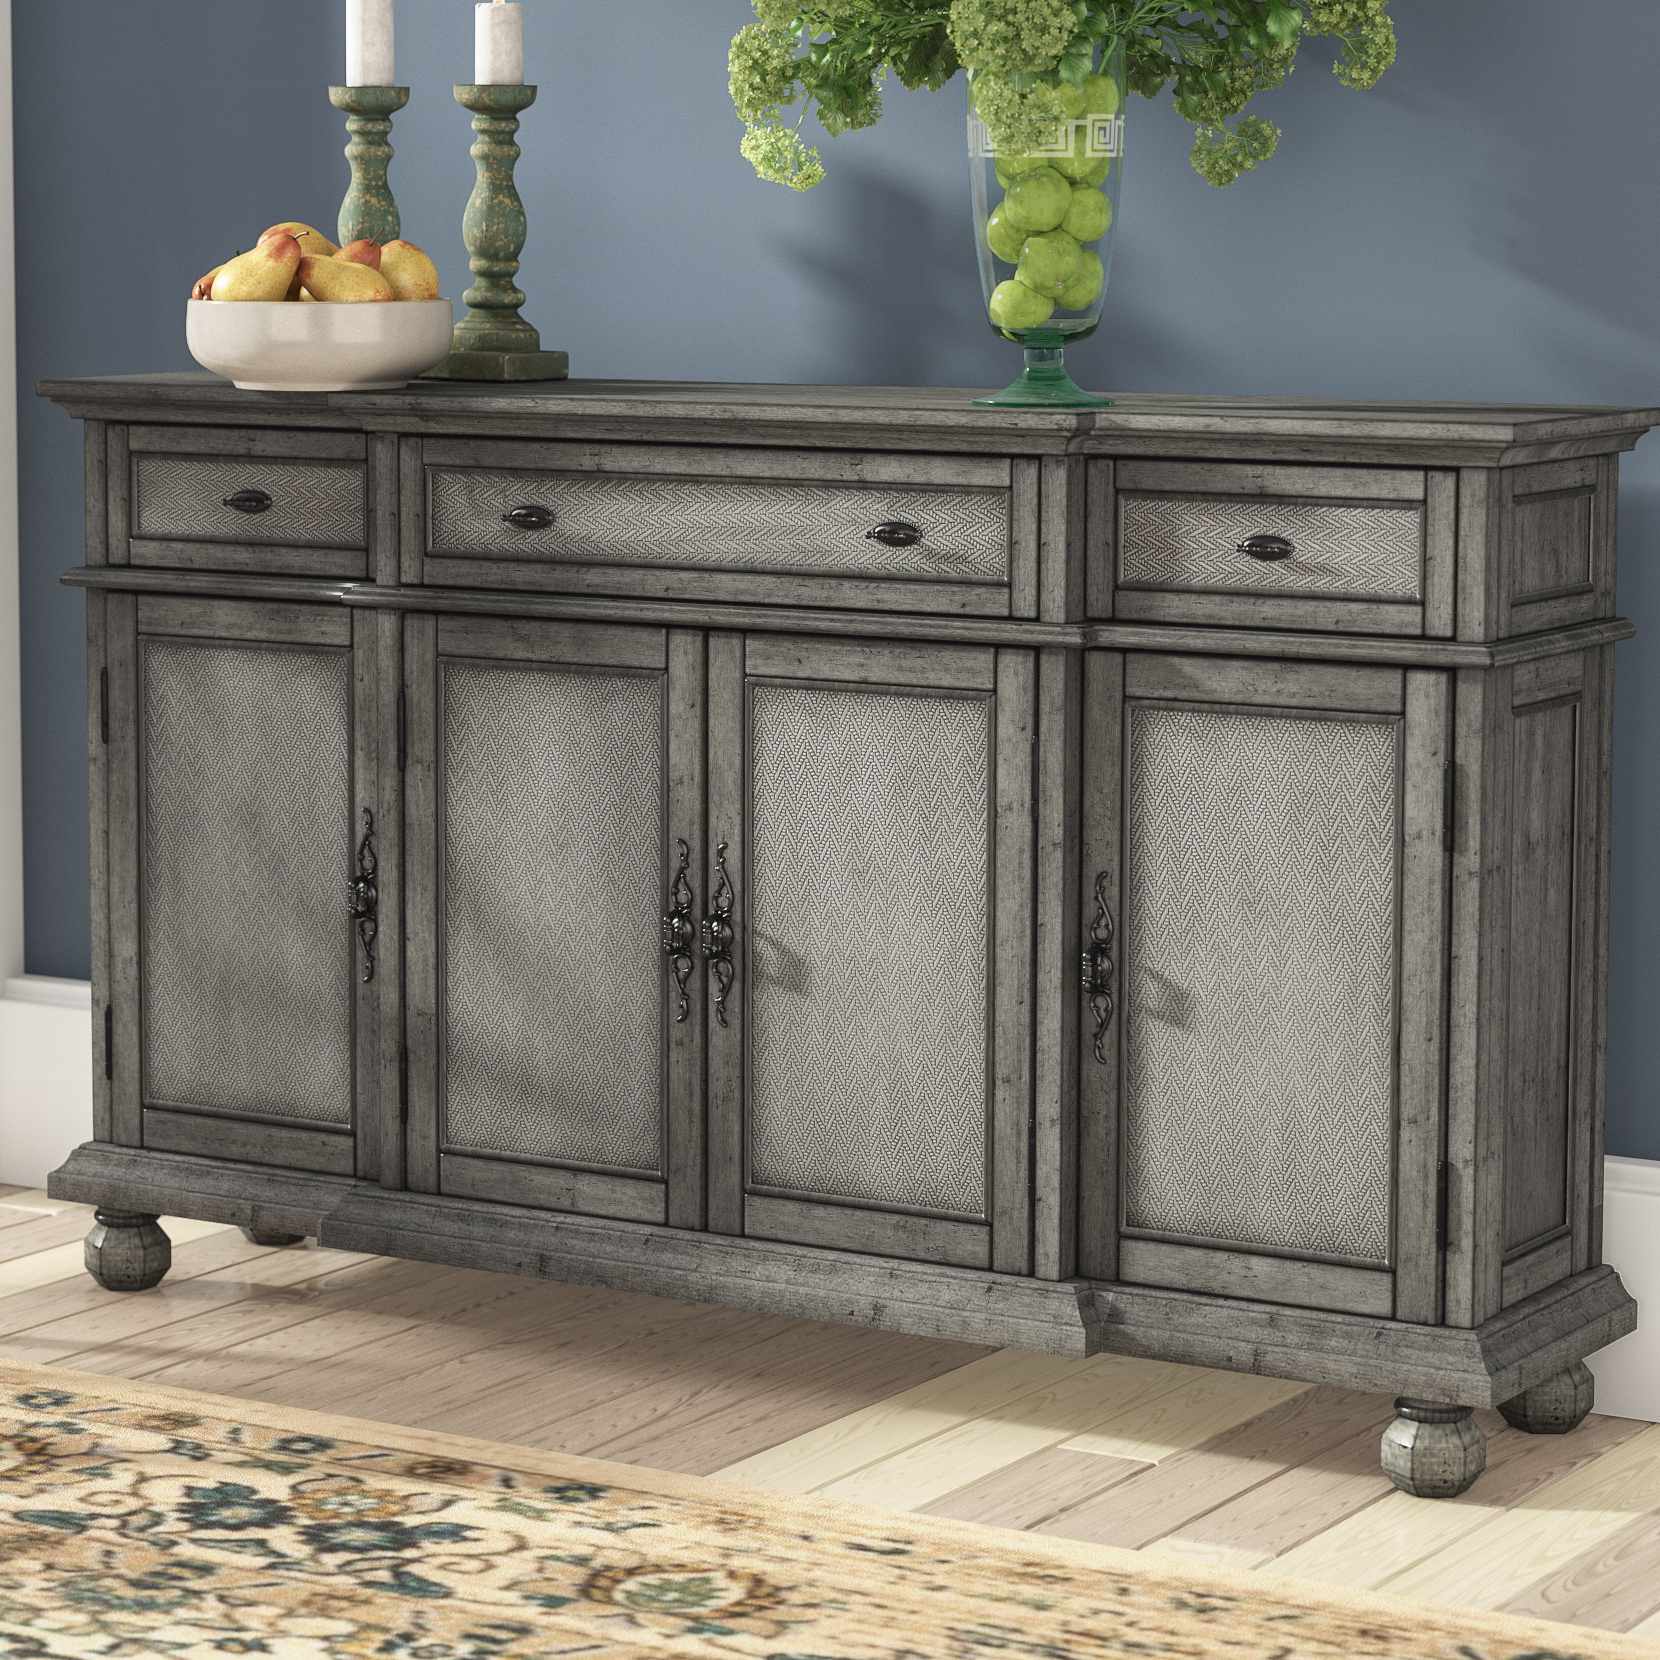 Baleine 3 Drawer Sideboards Pertaining To Trendy 3 Drawer Sideboard (View 8 of 20)